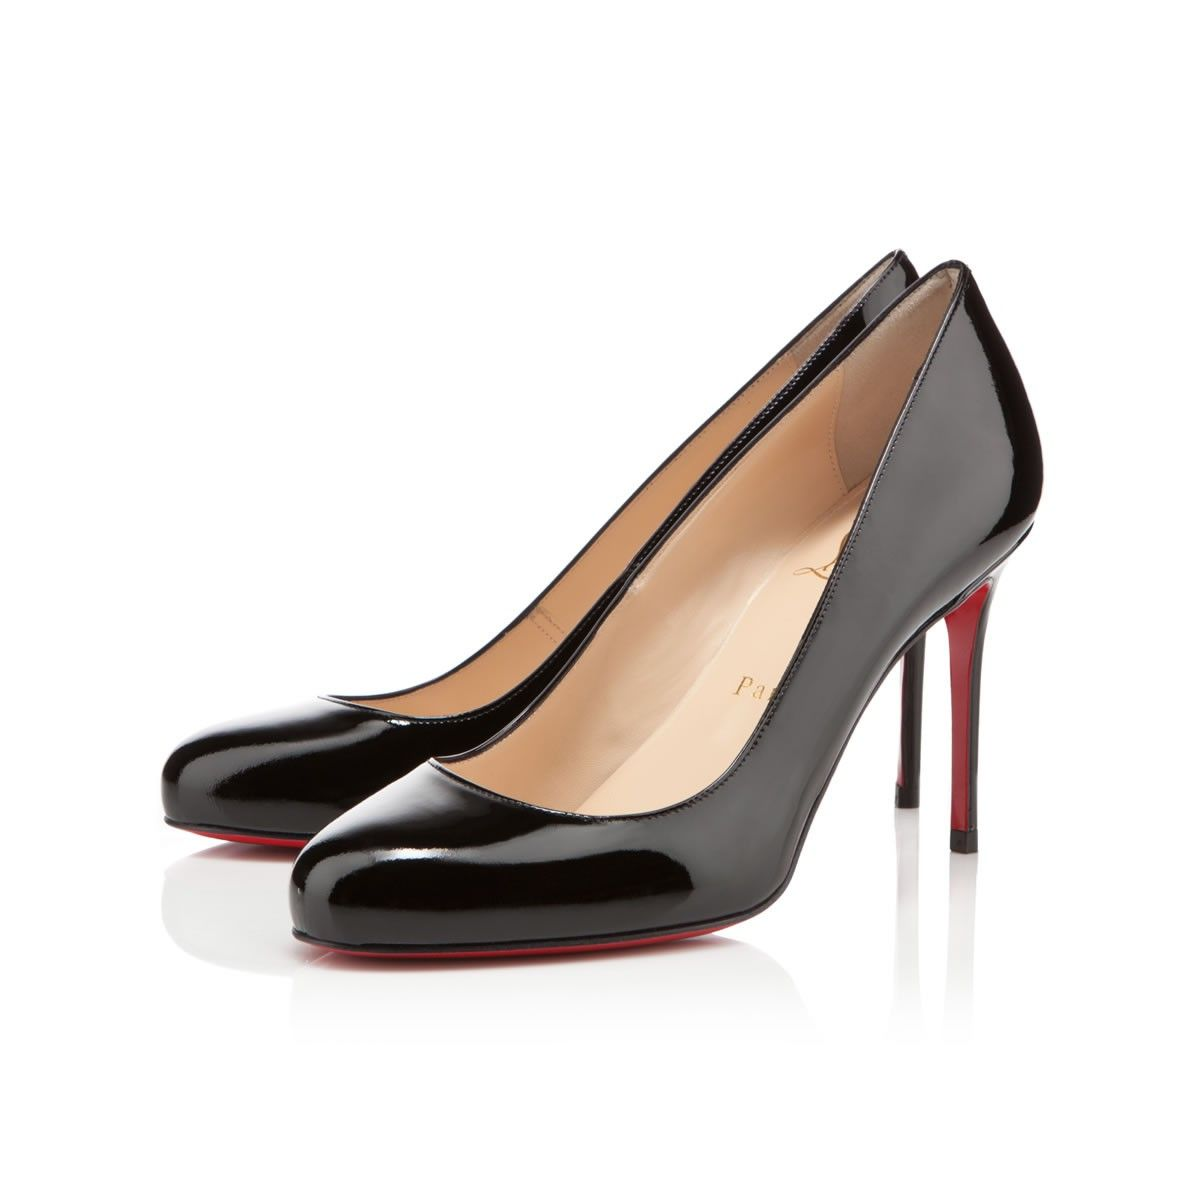 Fifi 100 MM Black Patent Leather - classic Louboutins!